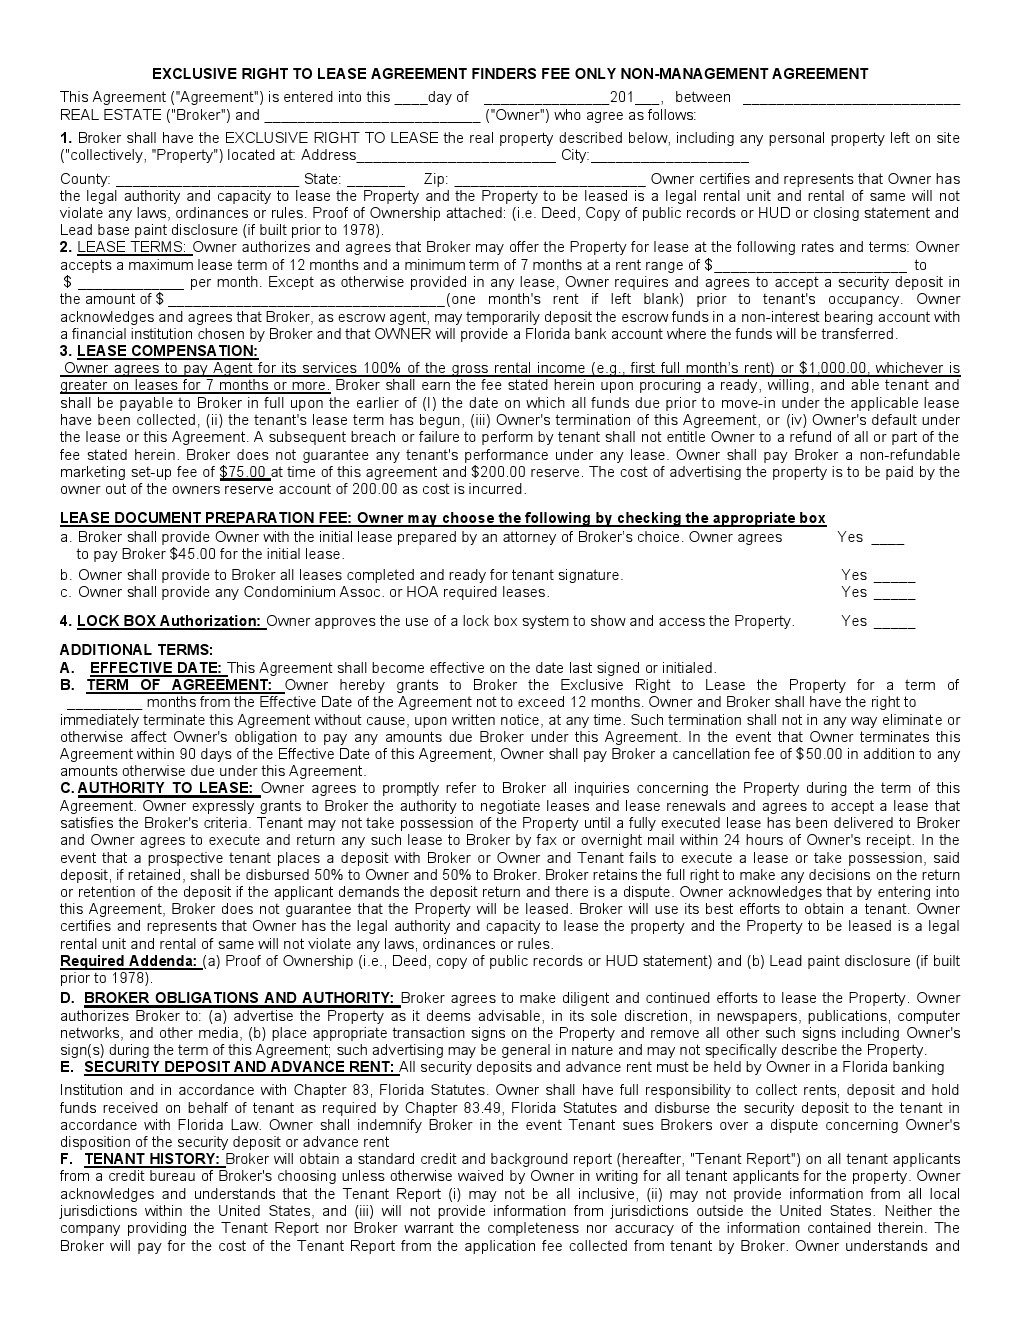 Florida Exclusive Right to Lease Agreement